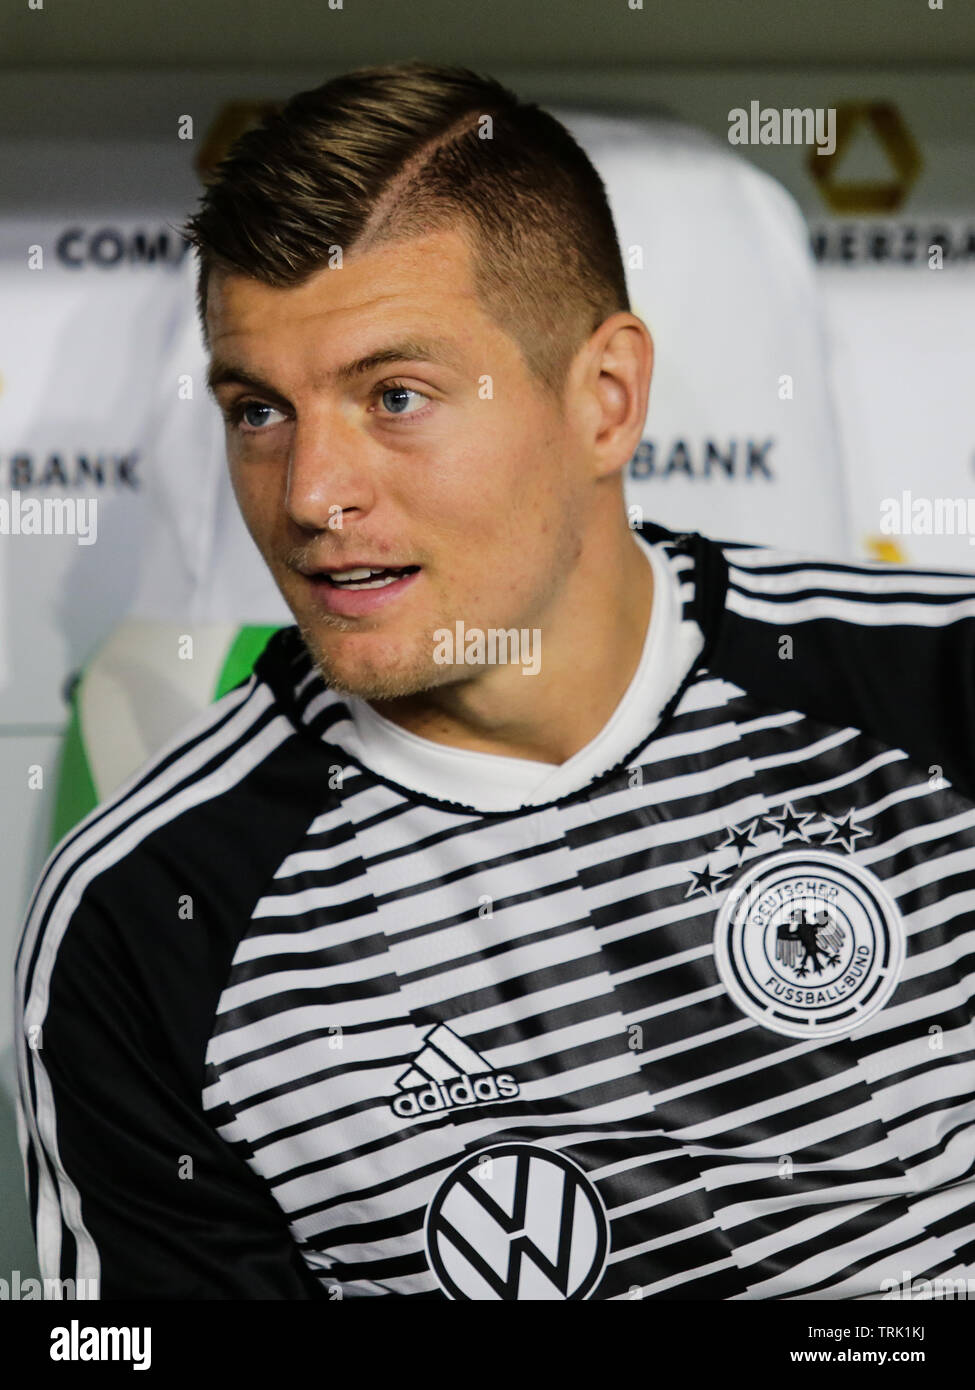 Germany National Football Team Stock Photos & Germany National